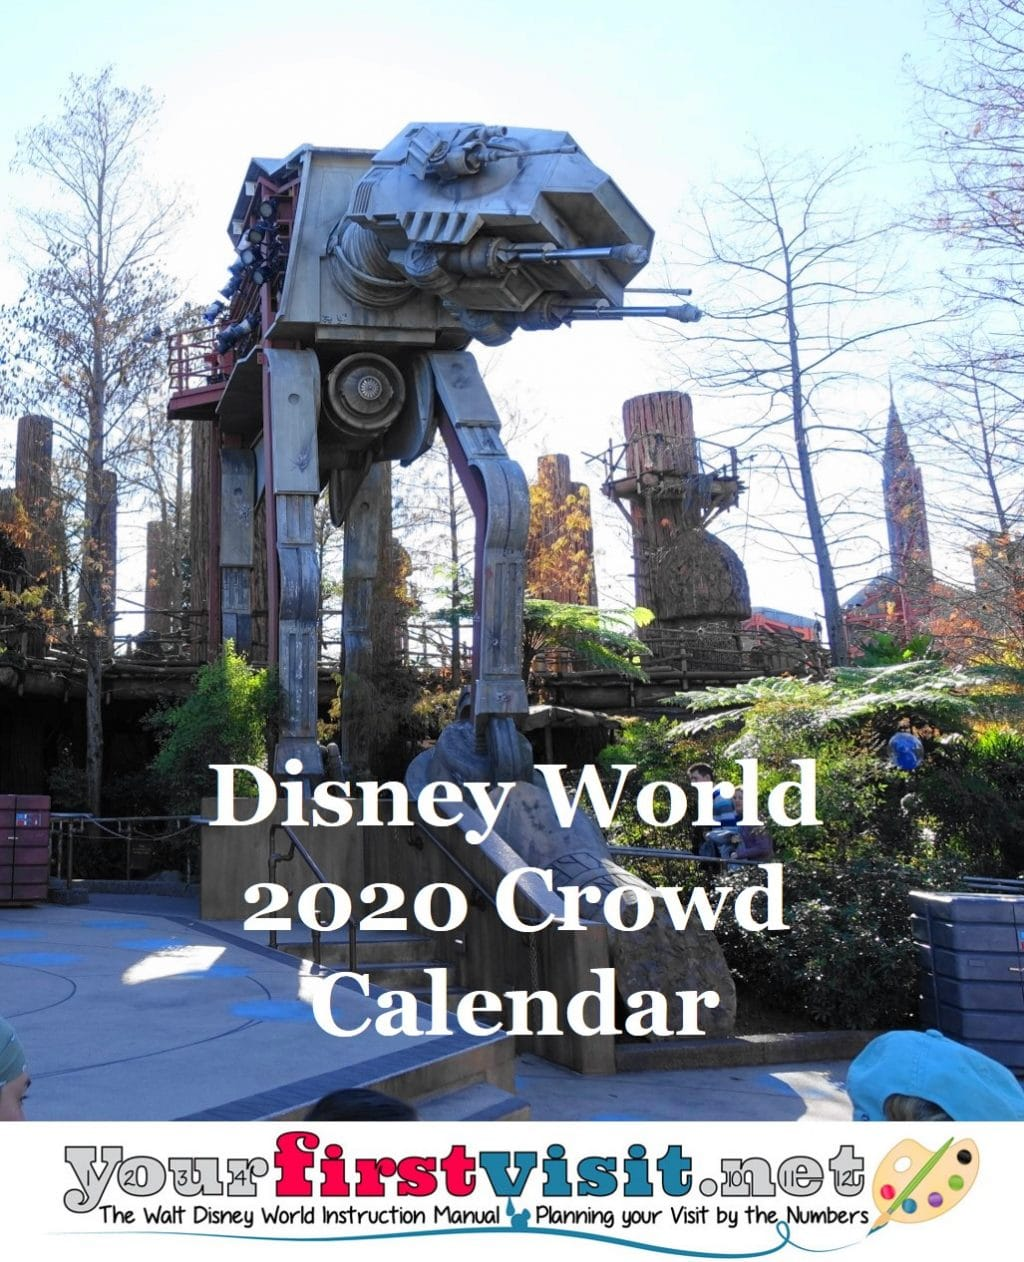 Disney 2020 Crowd Calendar Disney World Crowds in 2020   yourfirstvisit.net